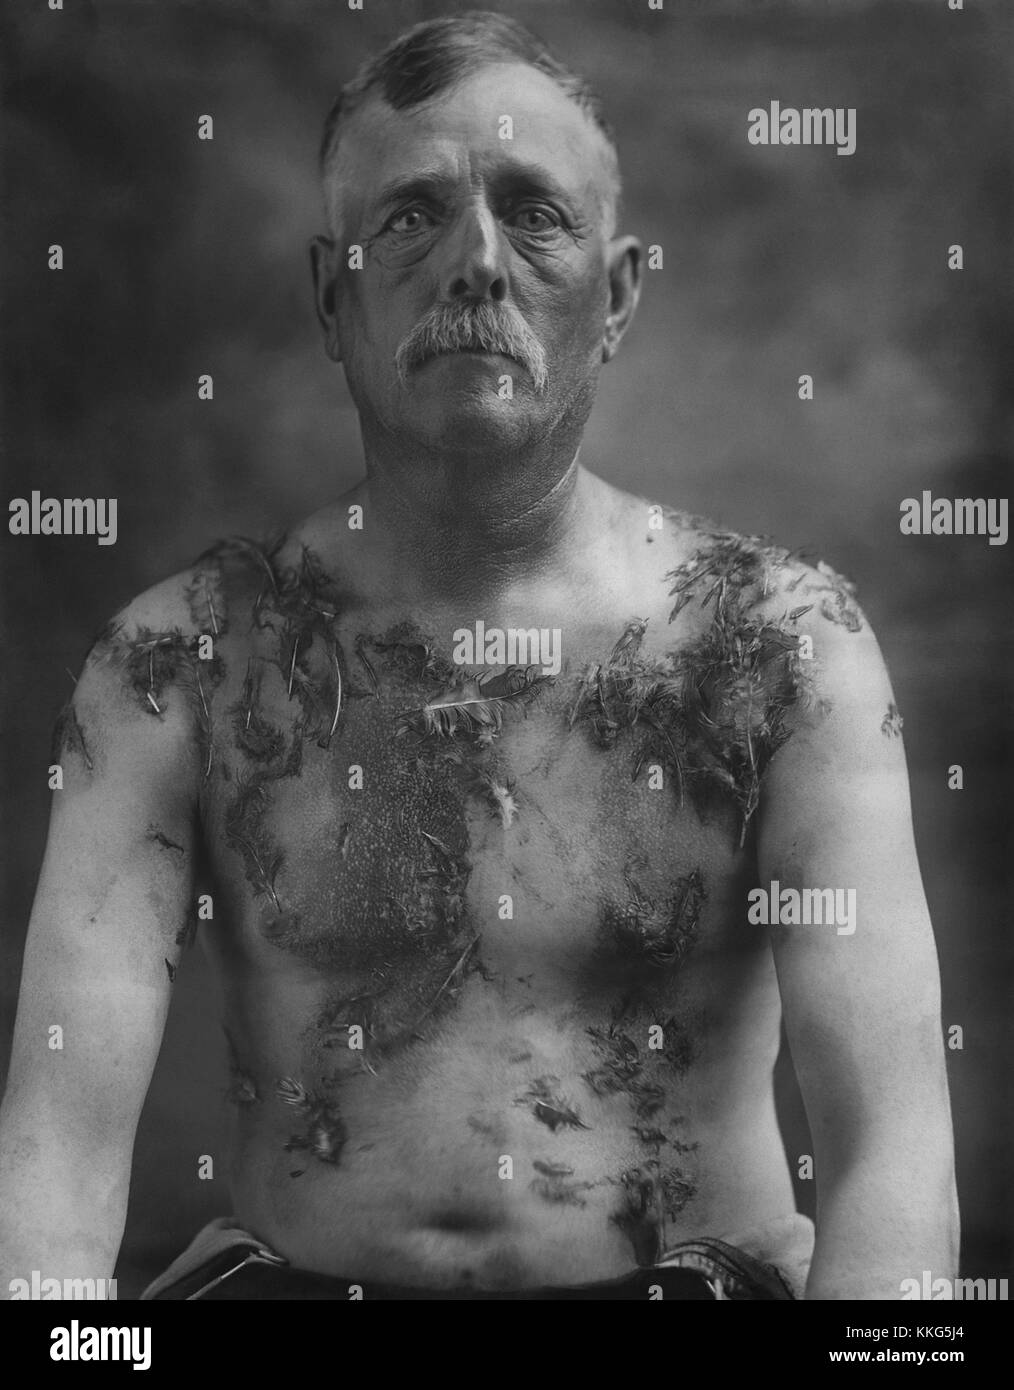 Tarred and feathered Stock Photo